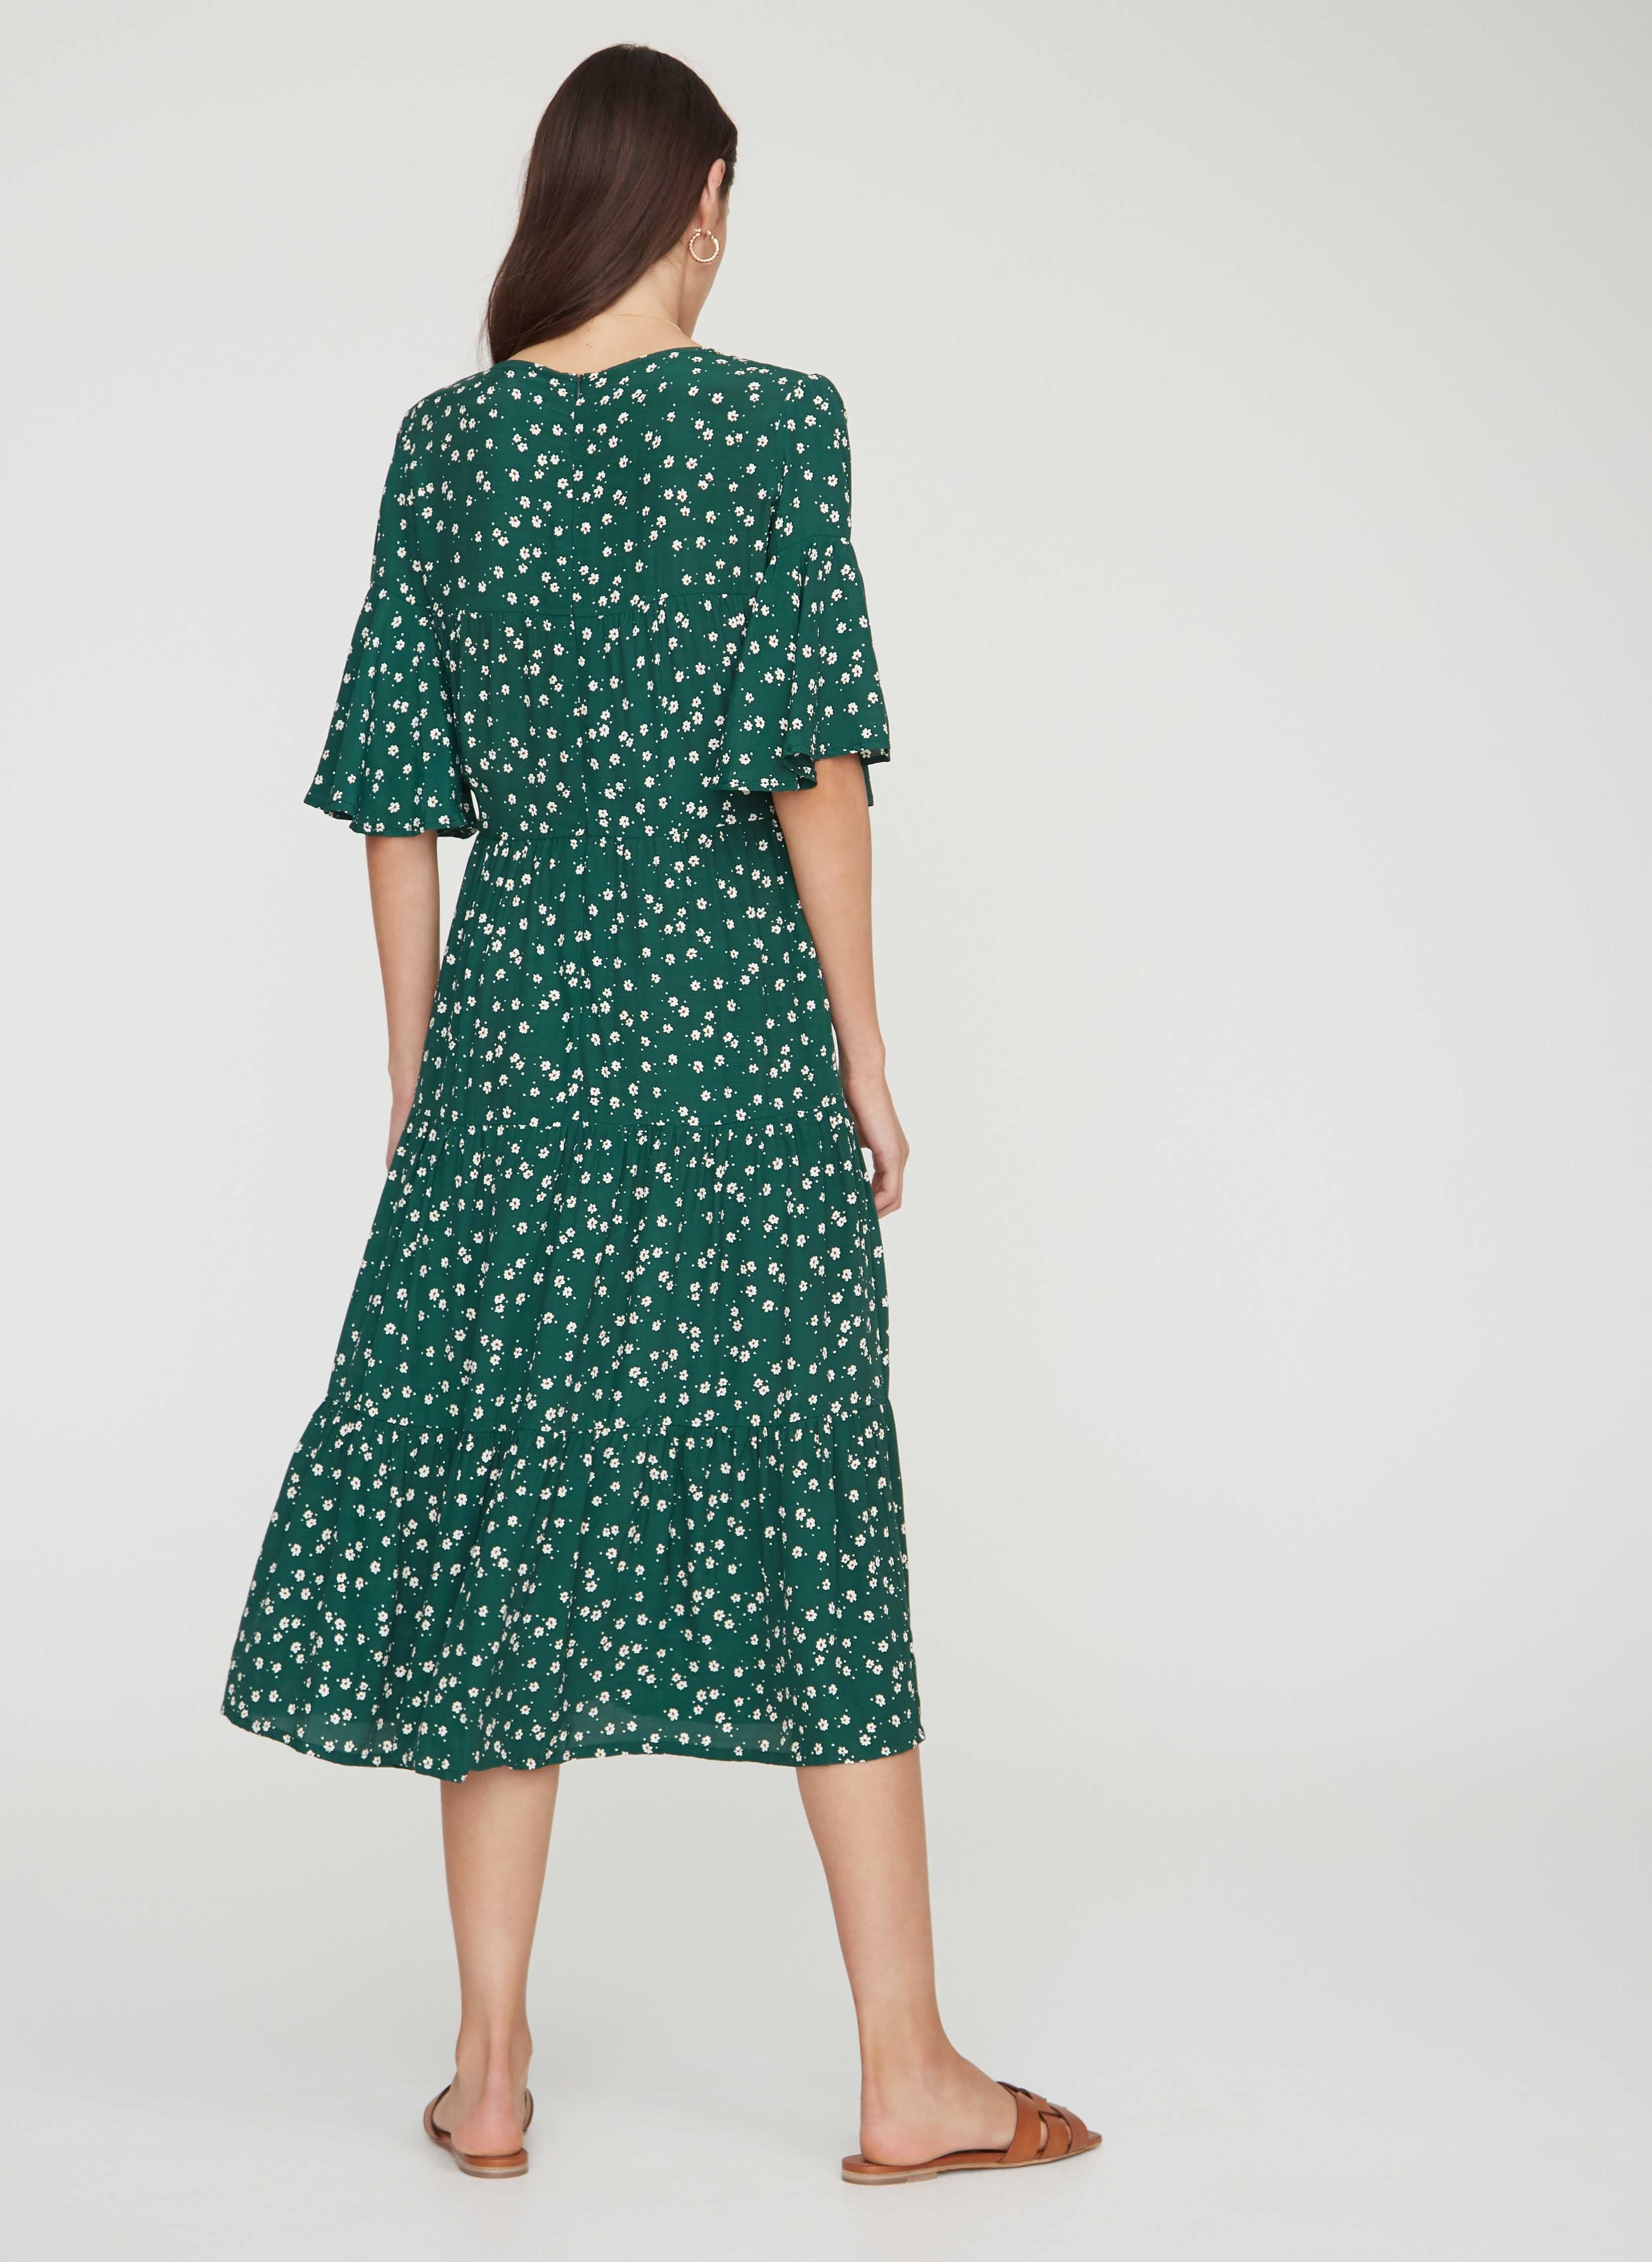 BETINA FLORAL PRINT - GREEN - MELIA MIDI DRESS - FINAL SALE